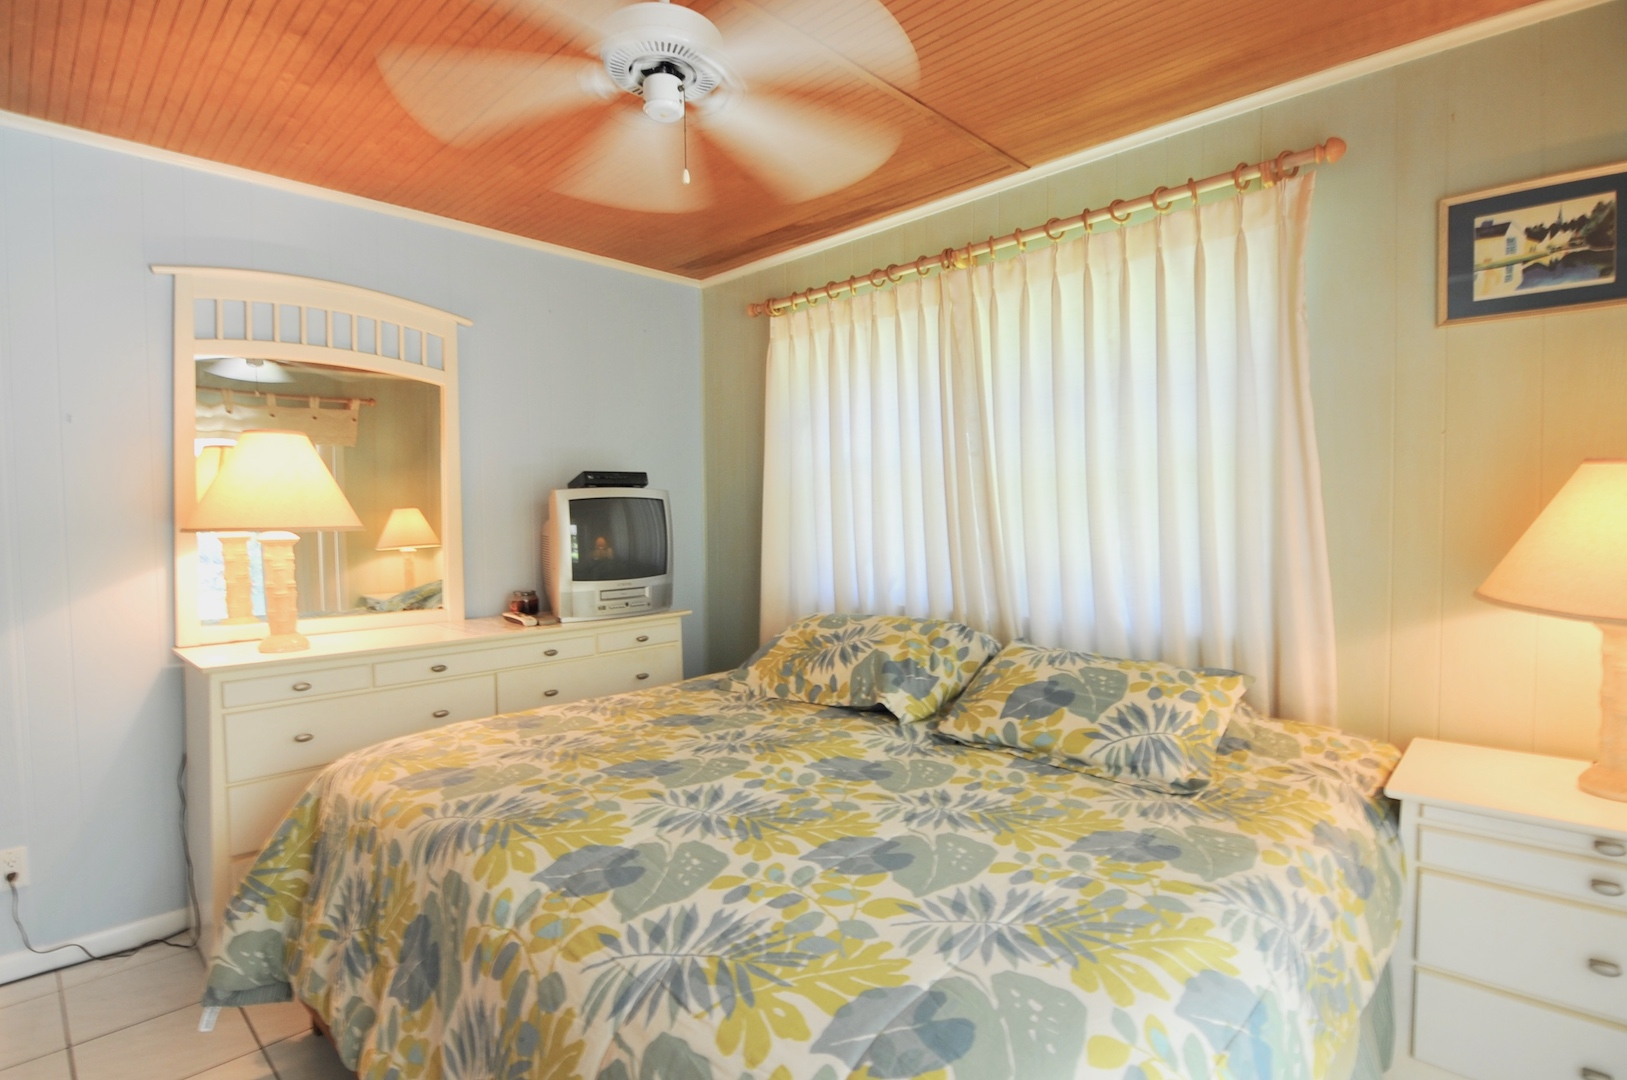 home for sale in man-o-war cay abaco bahamas with master suite